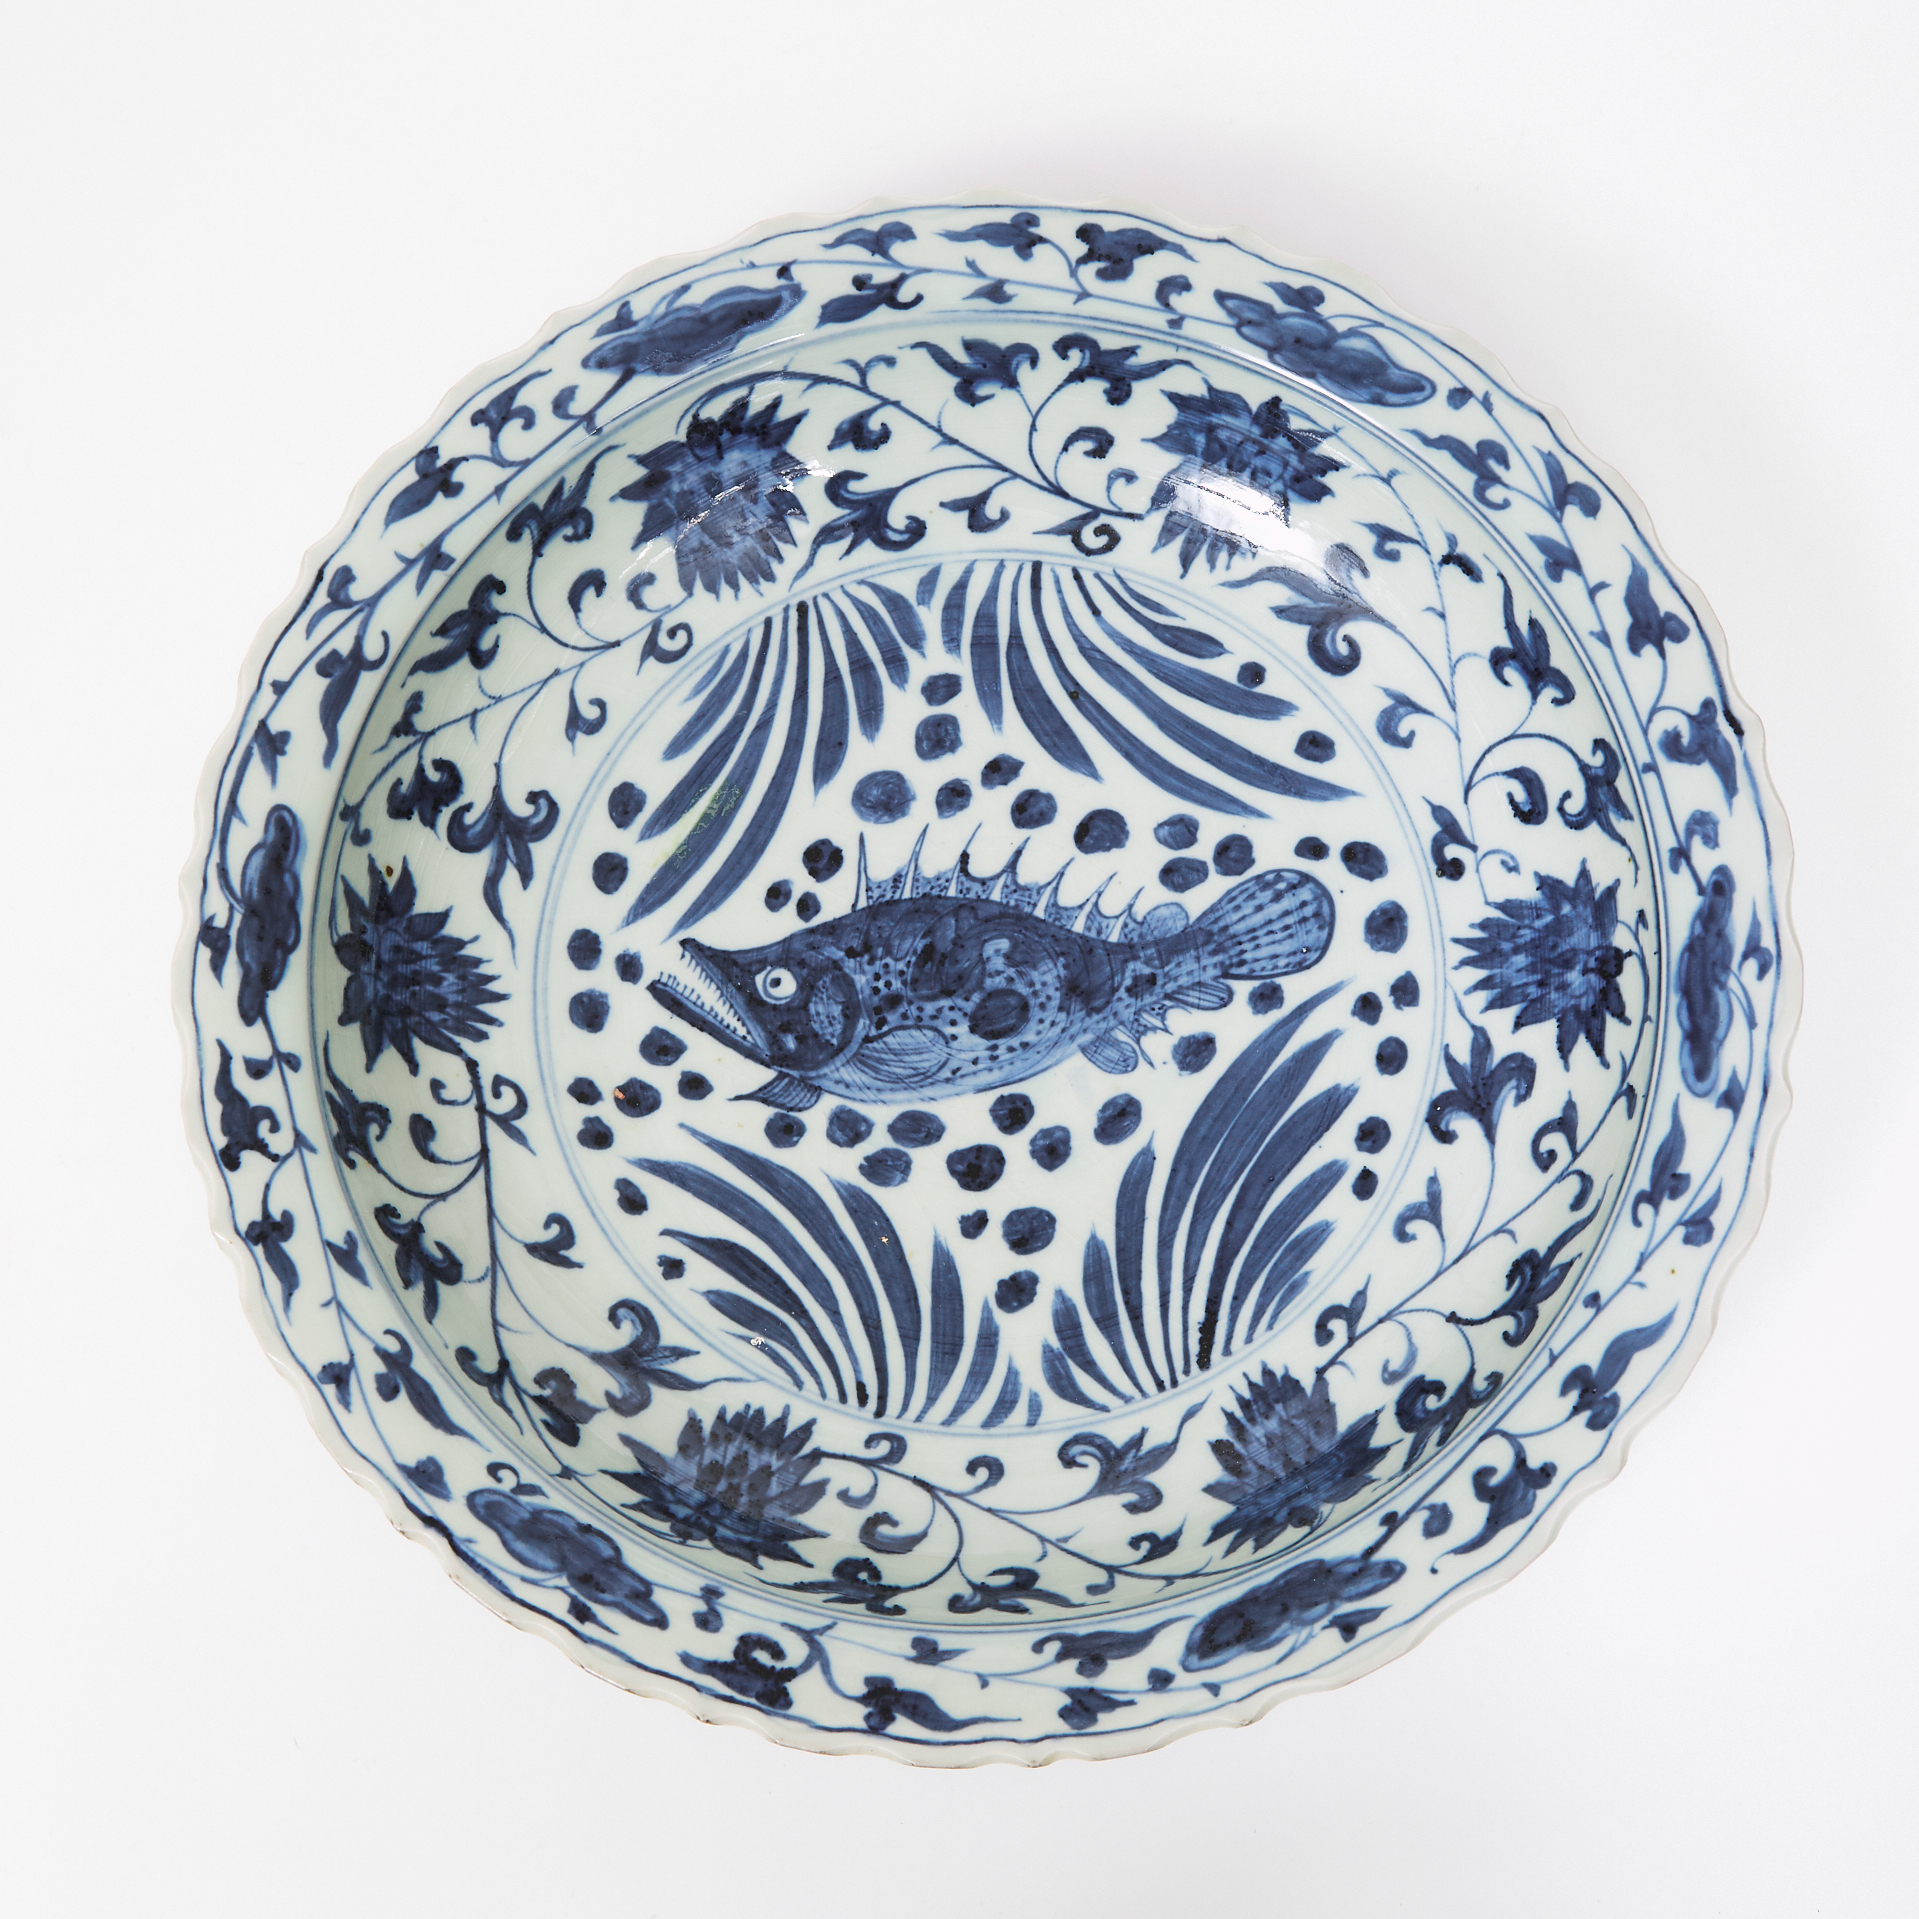 A Massive Blue and White 'Fish' Charger, Xuande Mark, 19th/20th Century